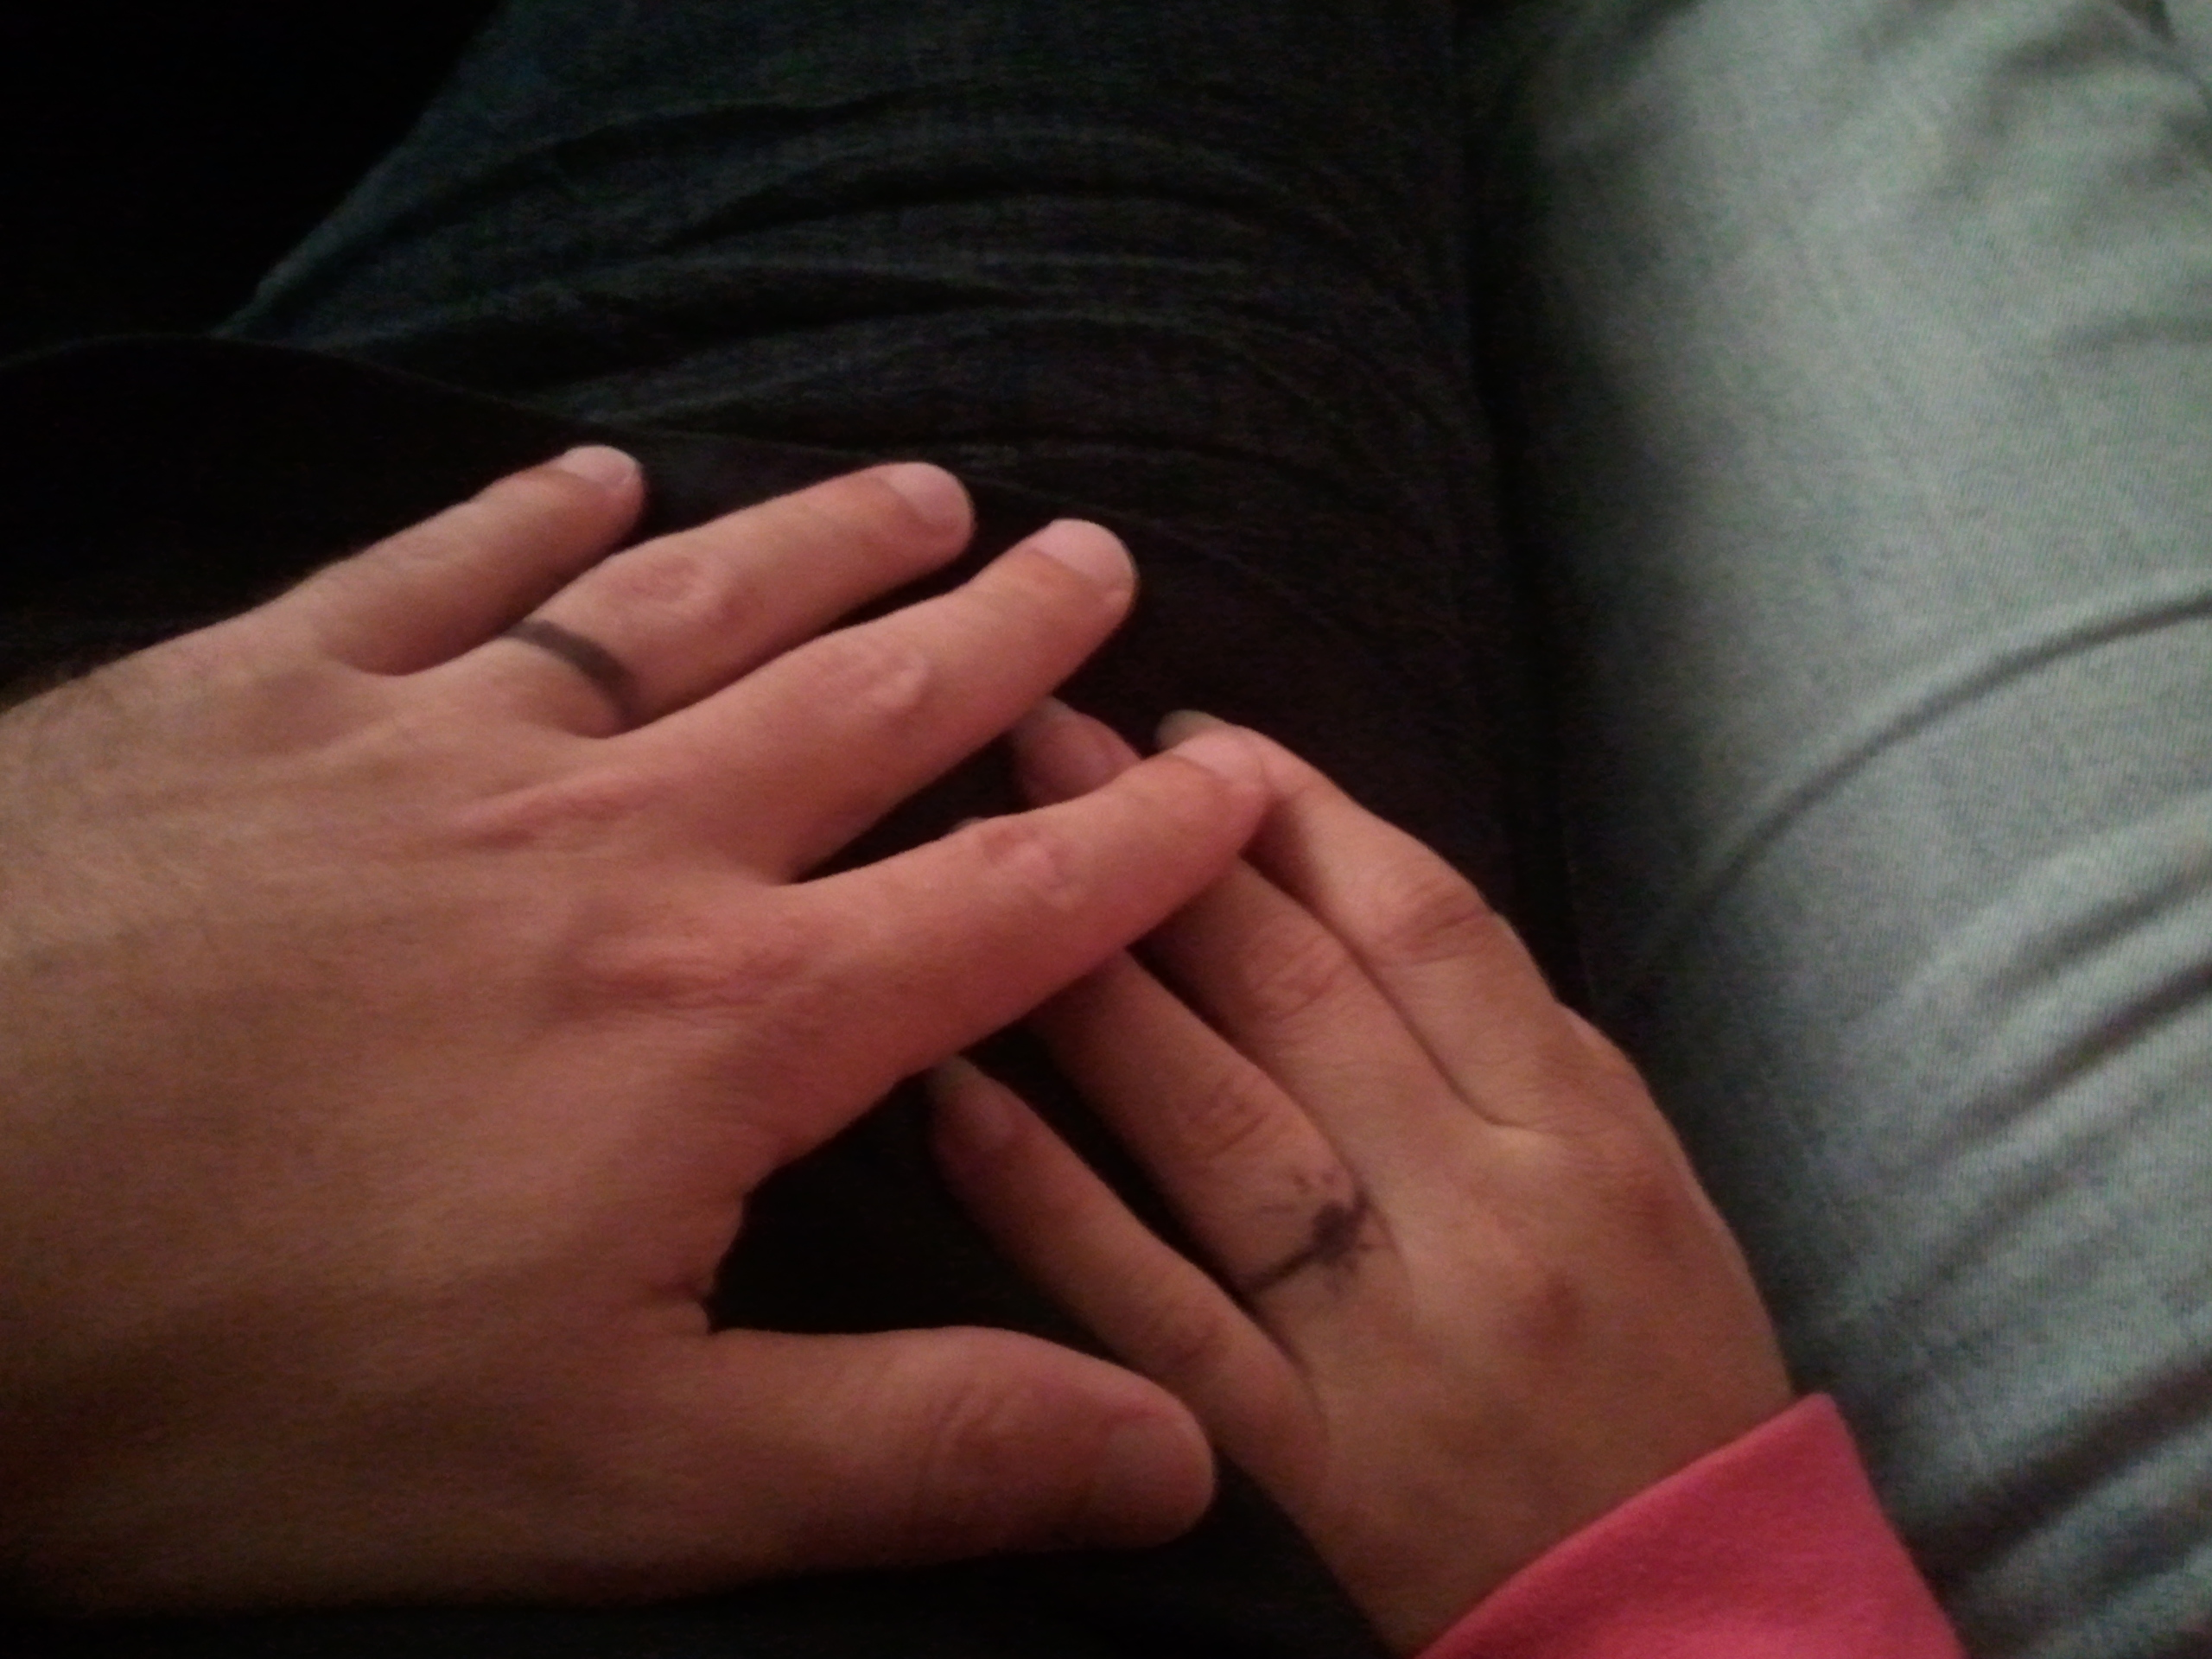 One month together and we drew rings on our wedding fingers.